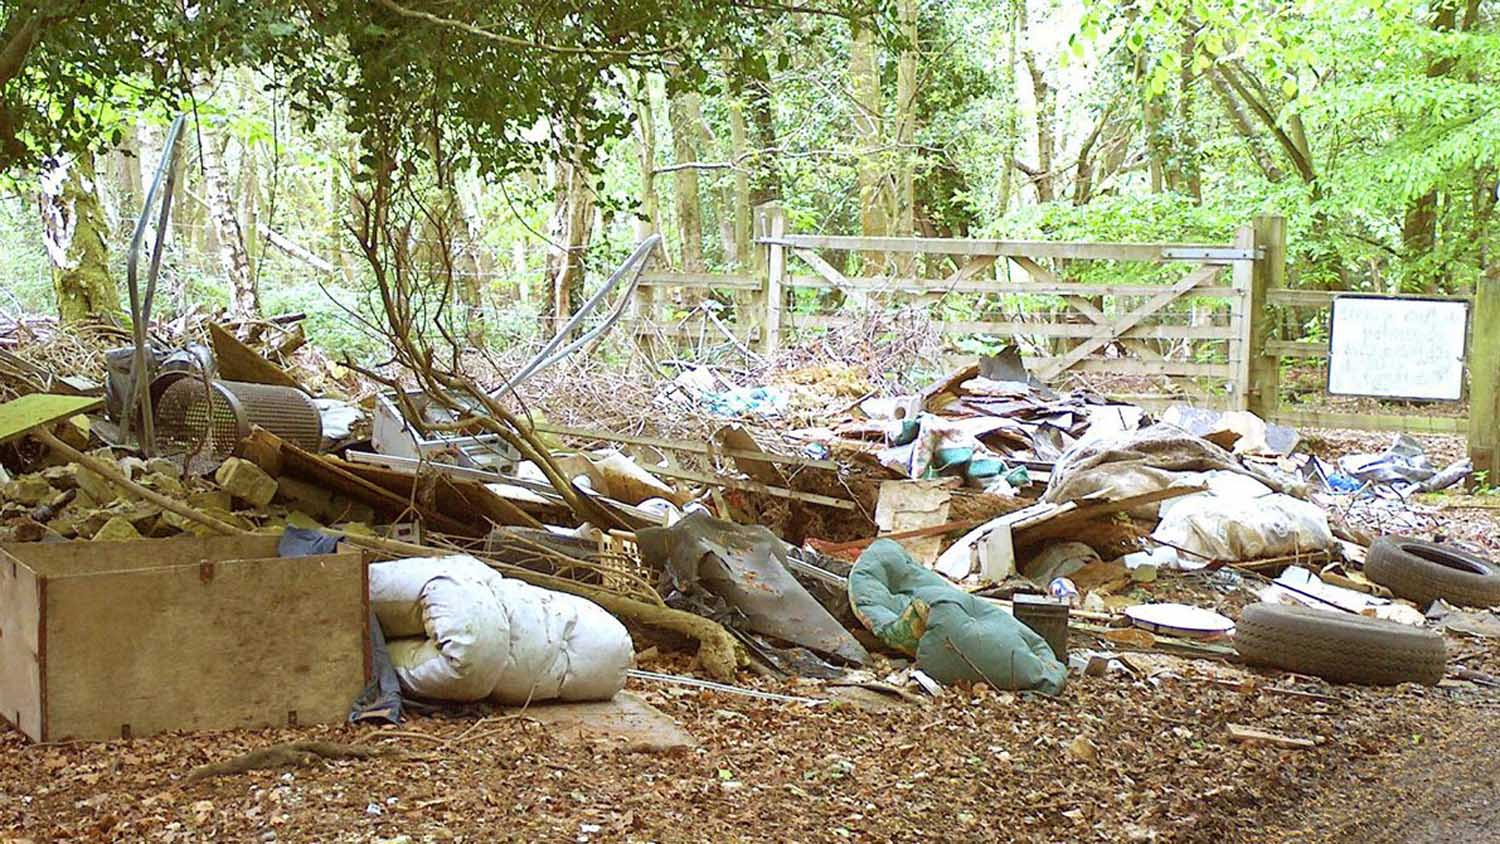 Defra launches next steps on tackling waste criminals in the countryside